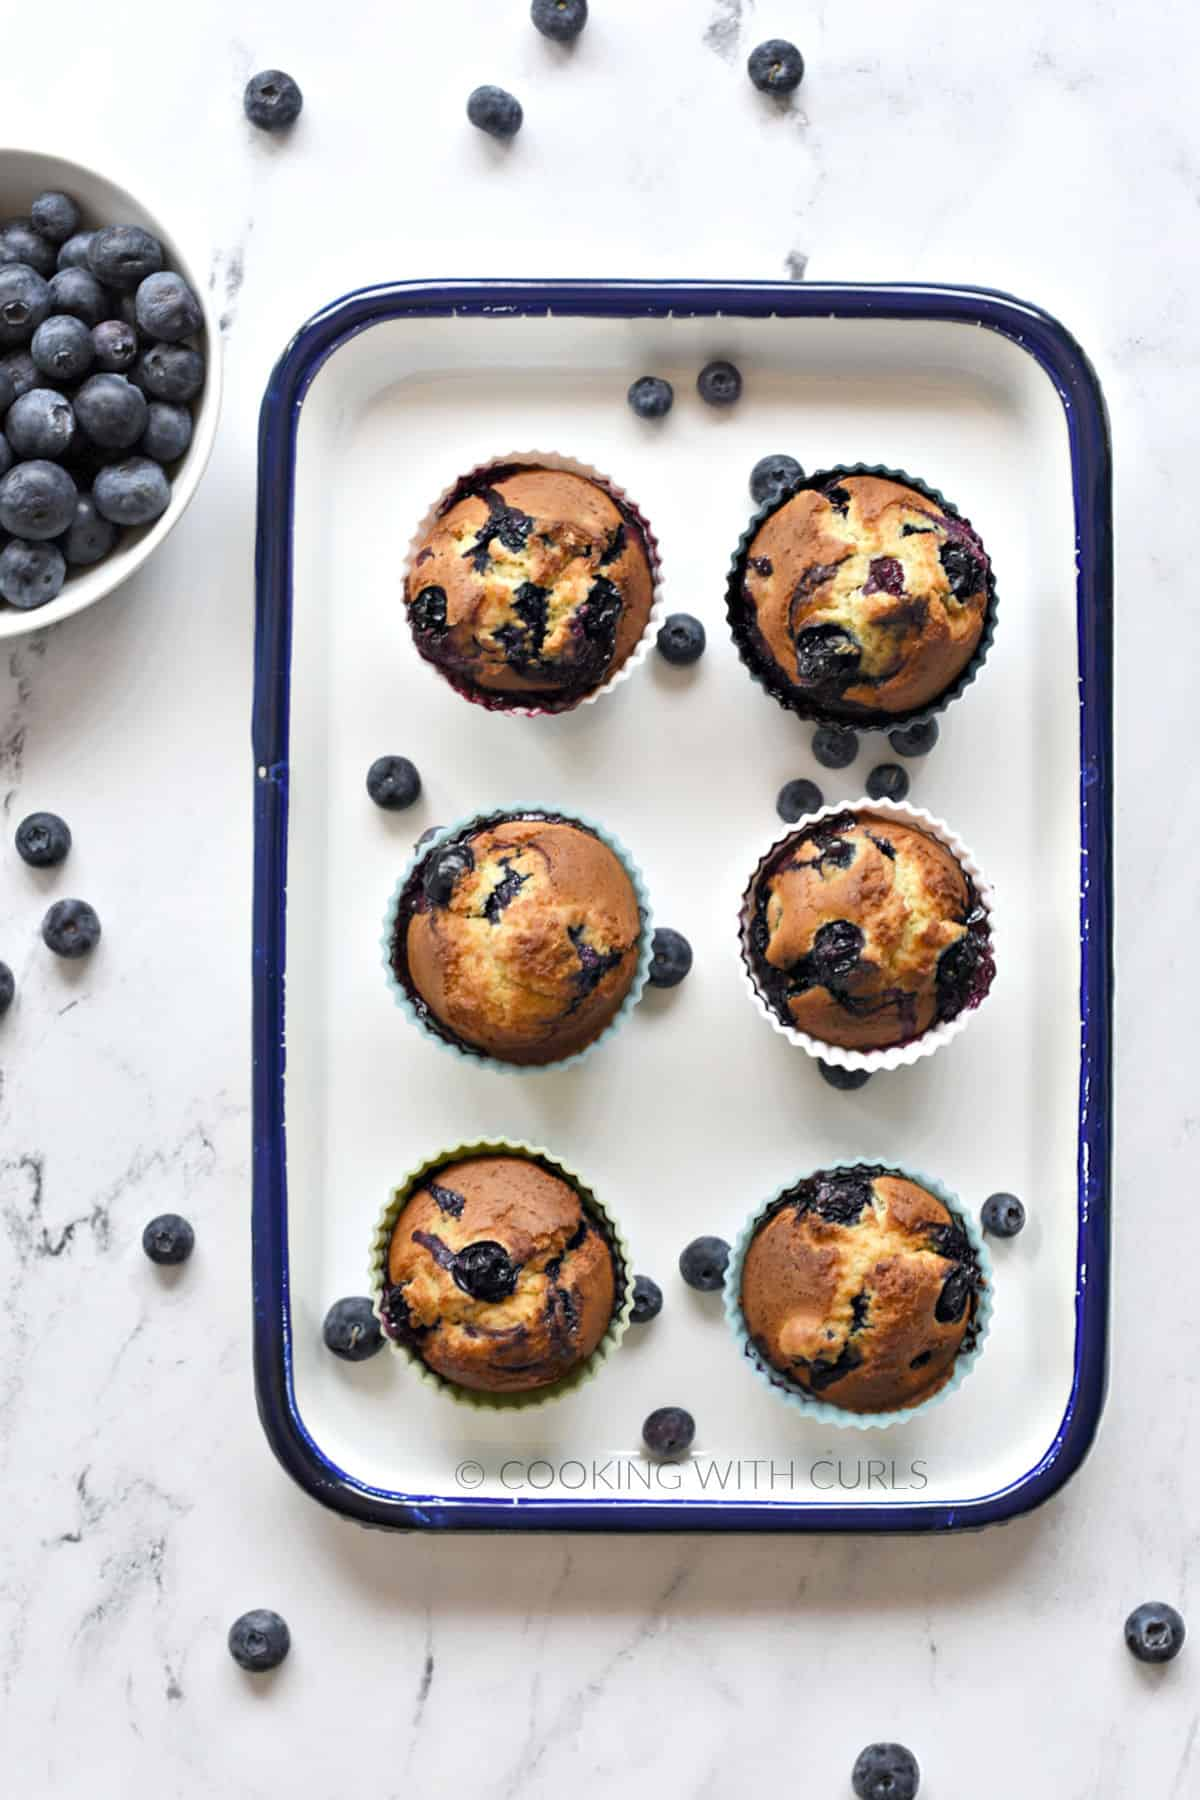 Six blueberry muffins on a white tray with a bowl of fresh blueberries in the upper right corner.